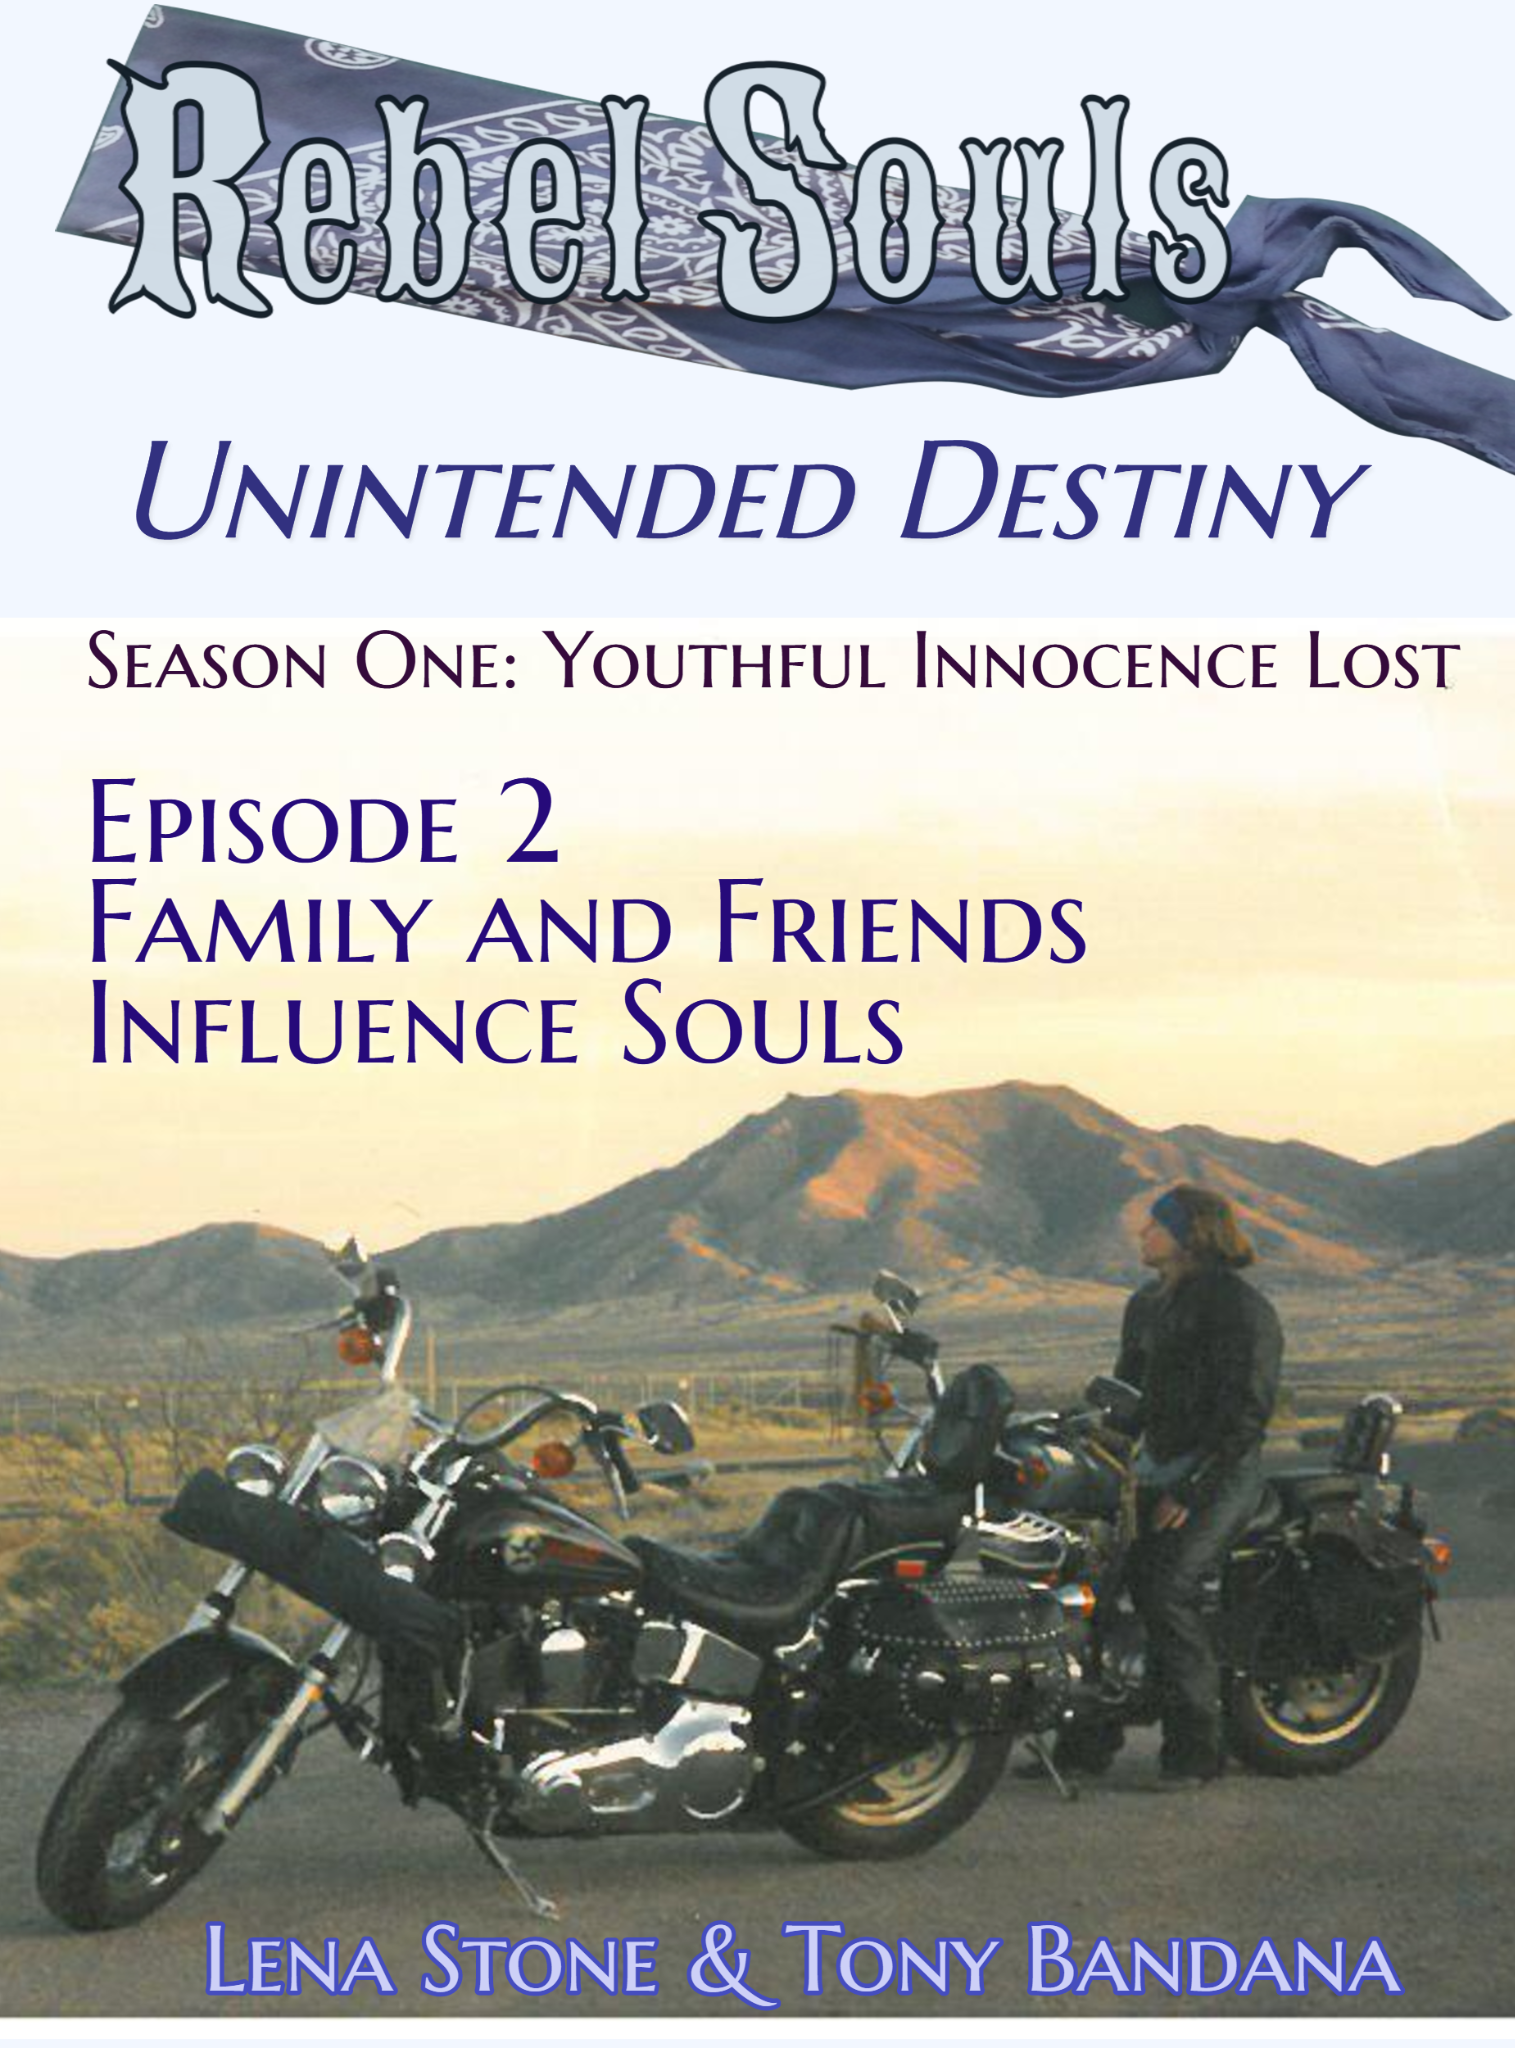 Family and Friends Influence Souls - PDF Print Version